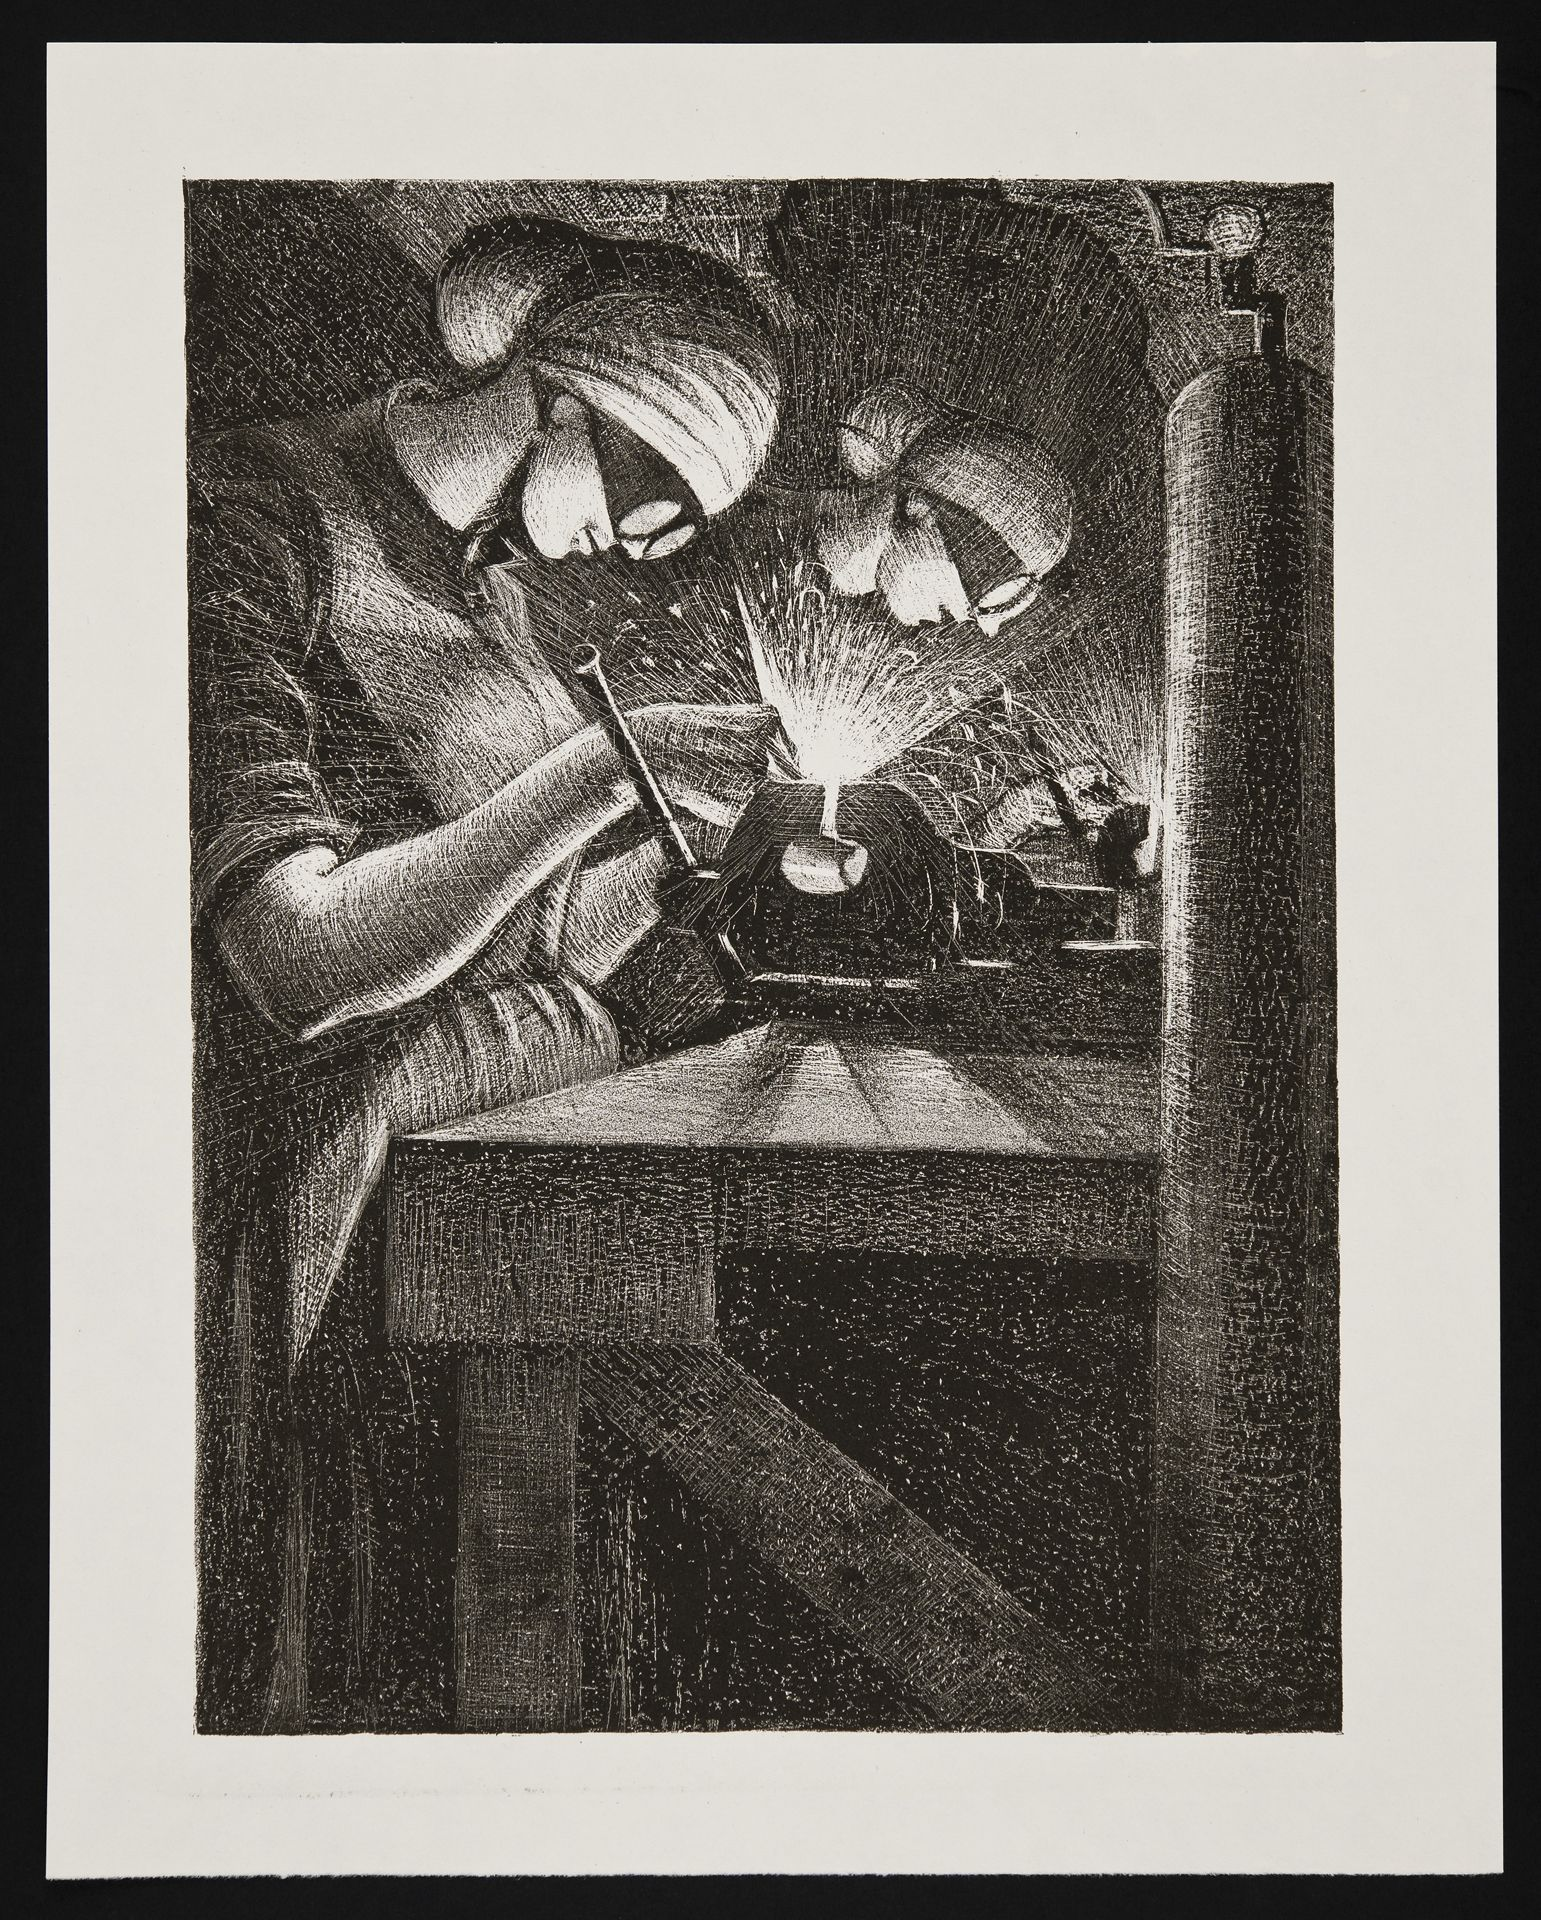 Acetylene Welder - Christopher Richard Wynne Nevinson